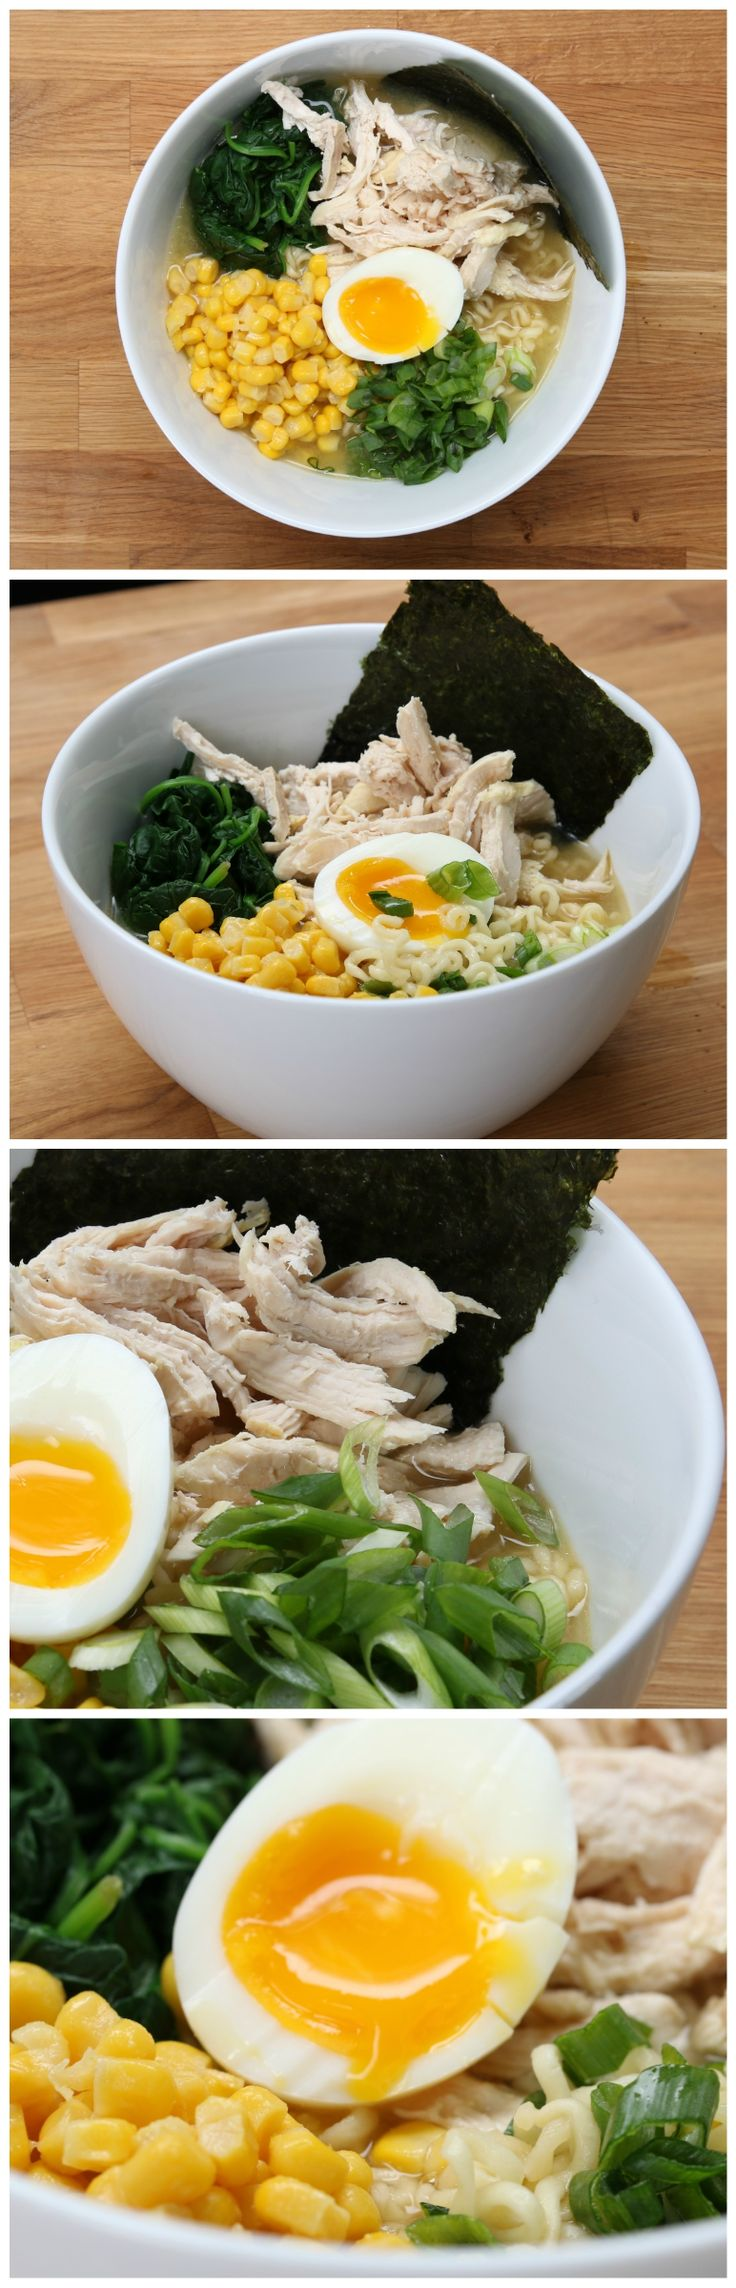 Easy Miso Chicken Ramen - This was so good, despite my forgetting to add the miso. Ha! Also, I didn't have spinach or nori. Definitely making it again.